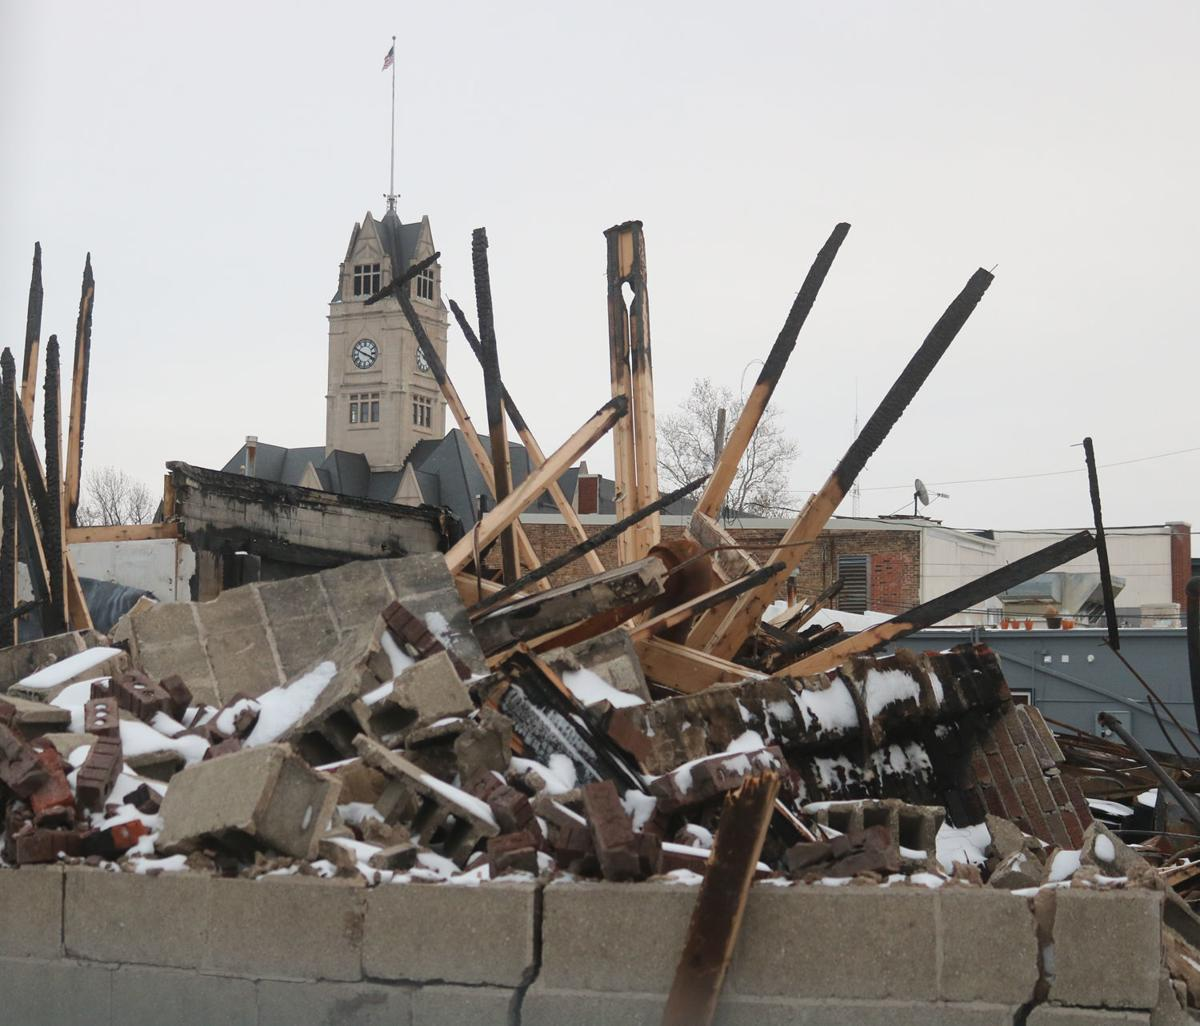 Piles of rubble